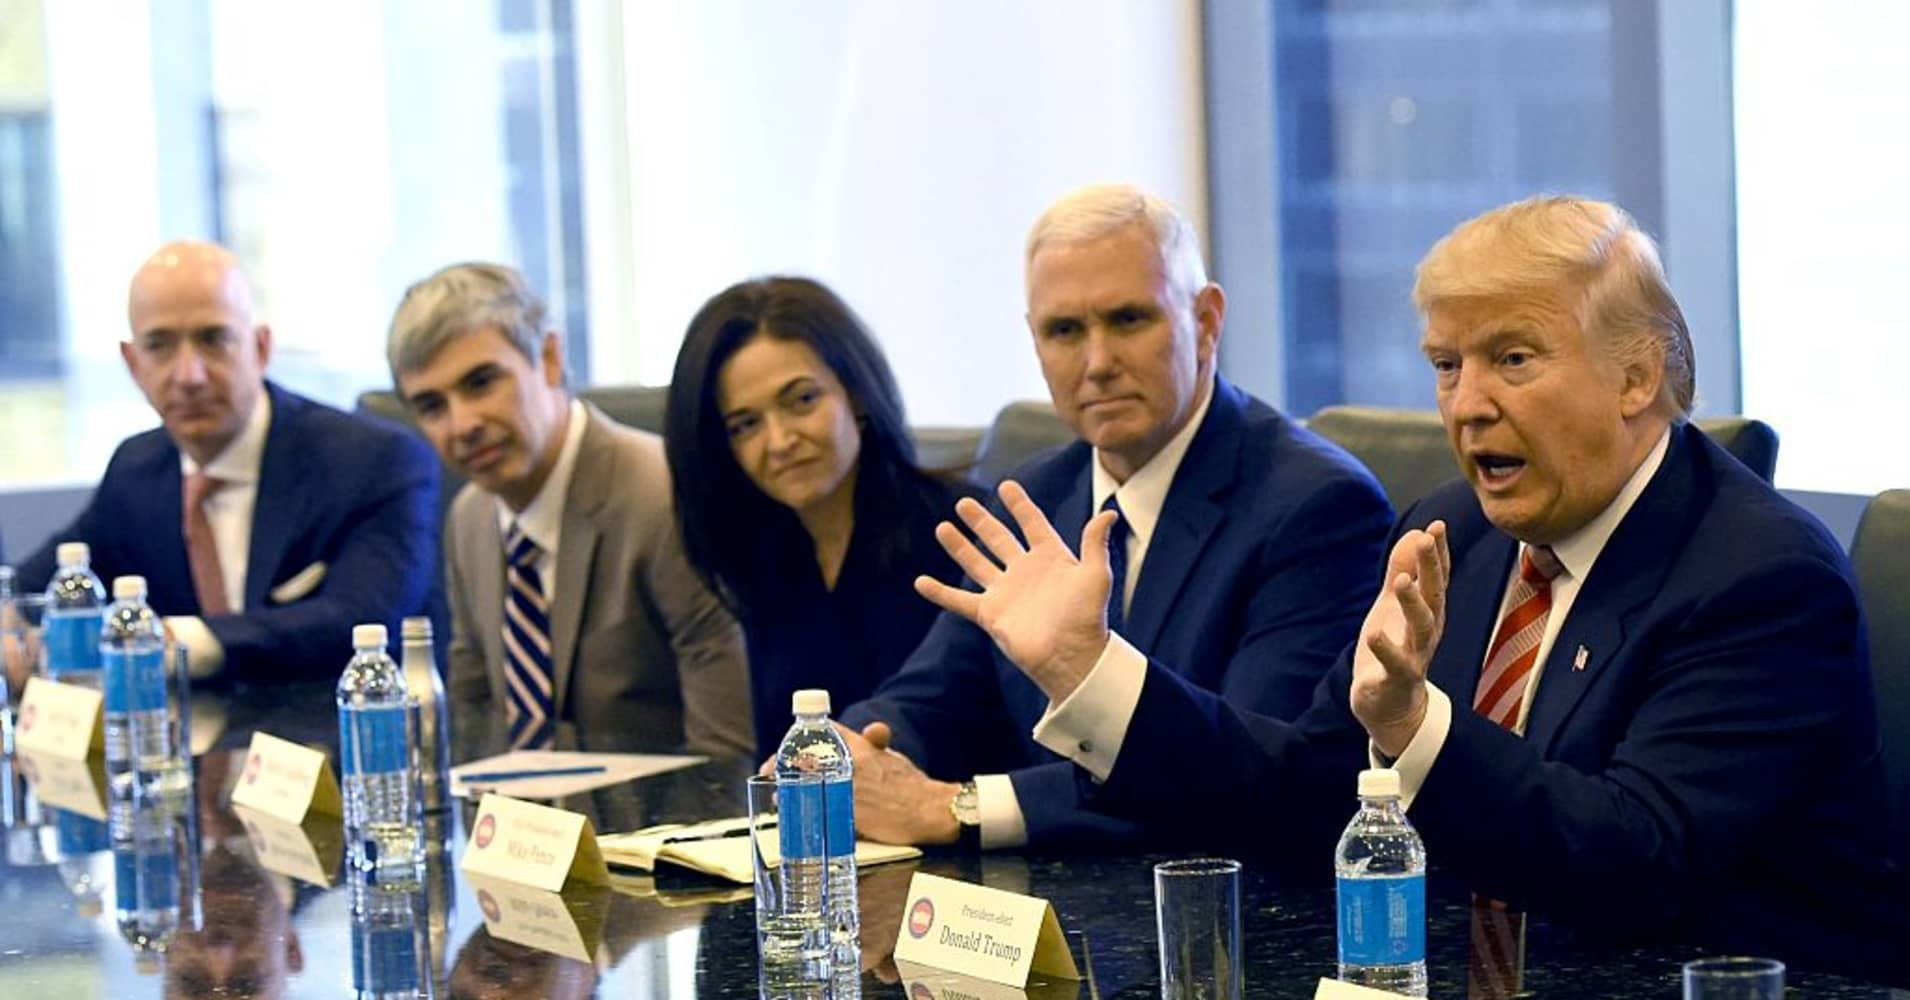 The White House will huddle with execs from Apple, Google, Facebook next month